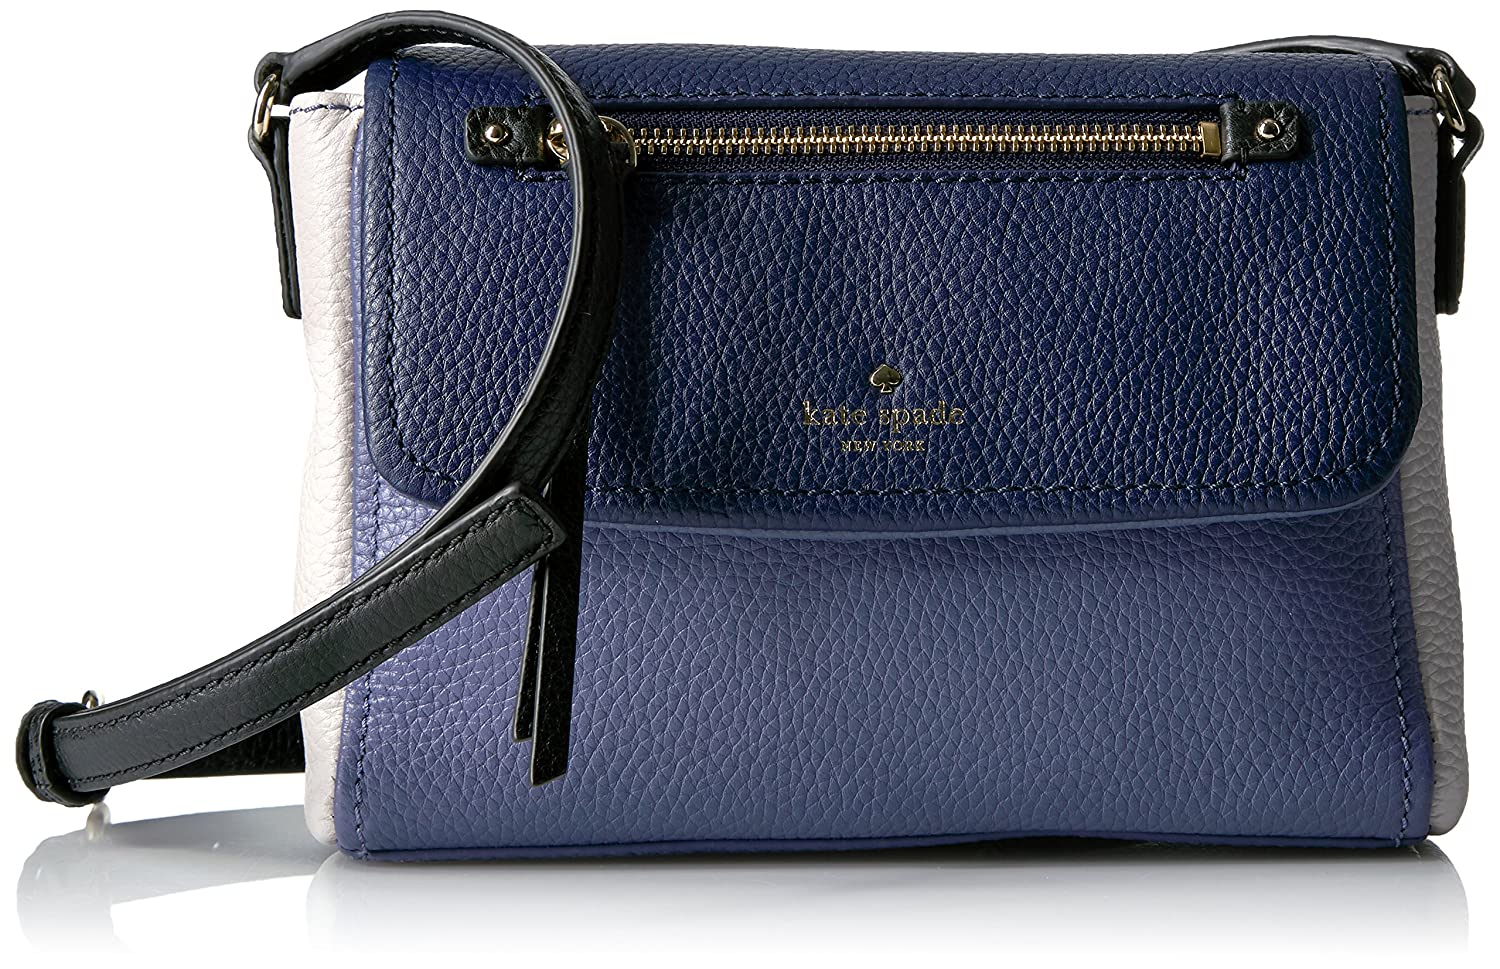 Kate Spade New York レディース B01M3UXPRN Oyster Blue/Multi Oyster Blue/Multi